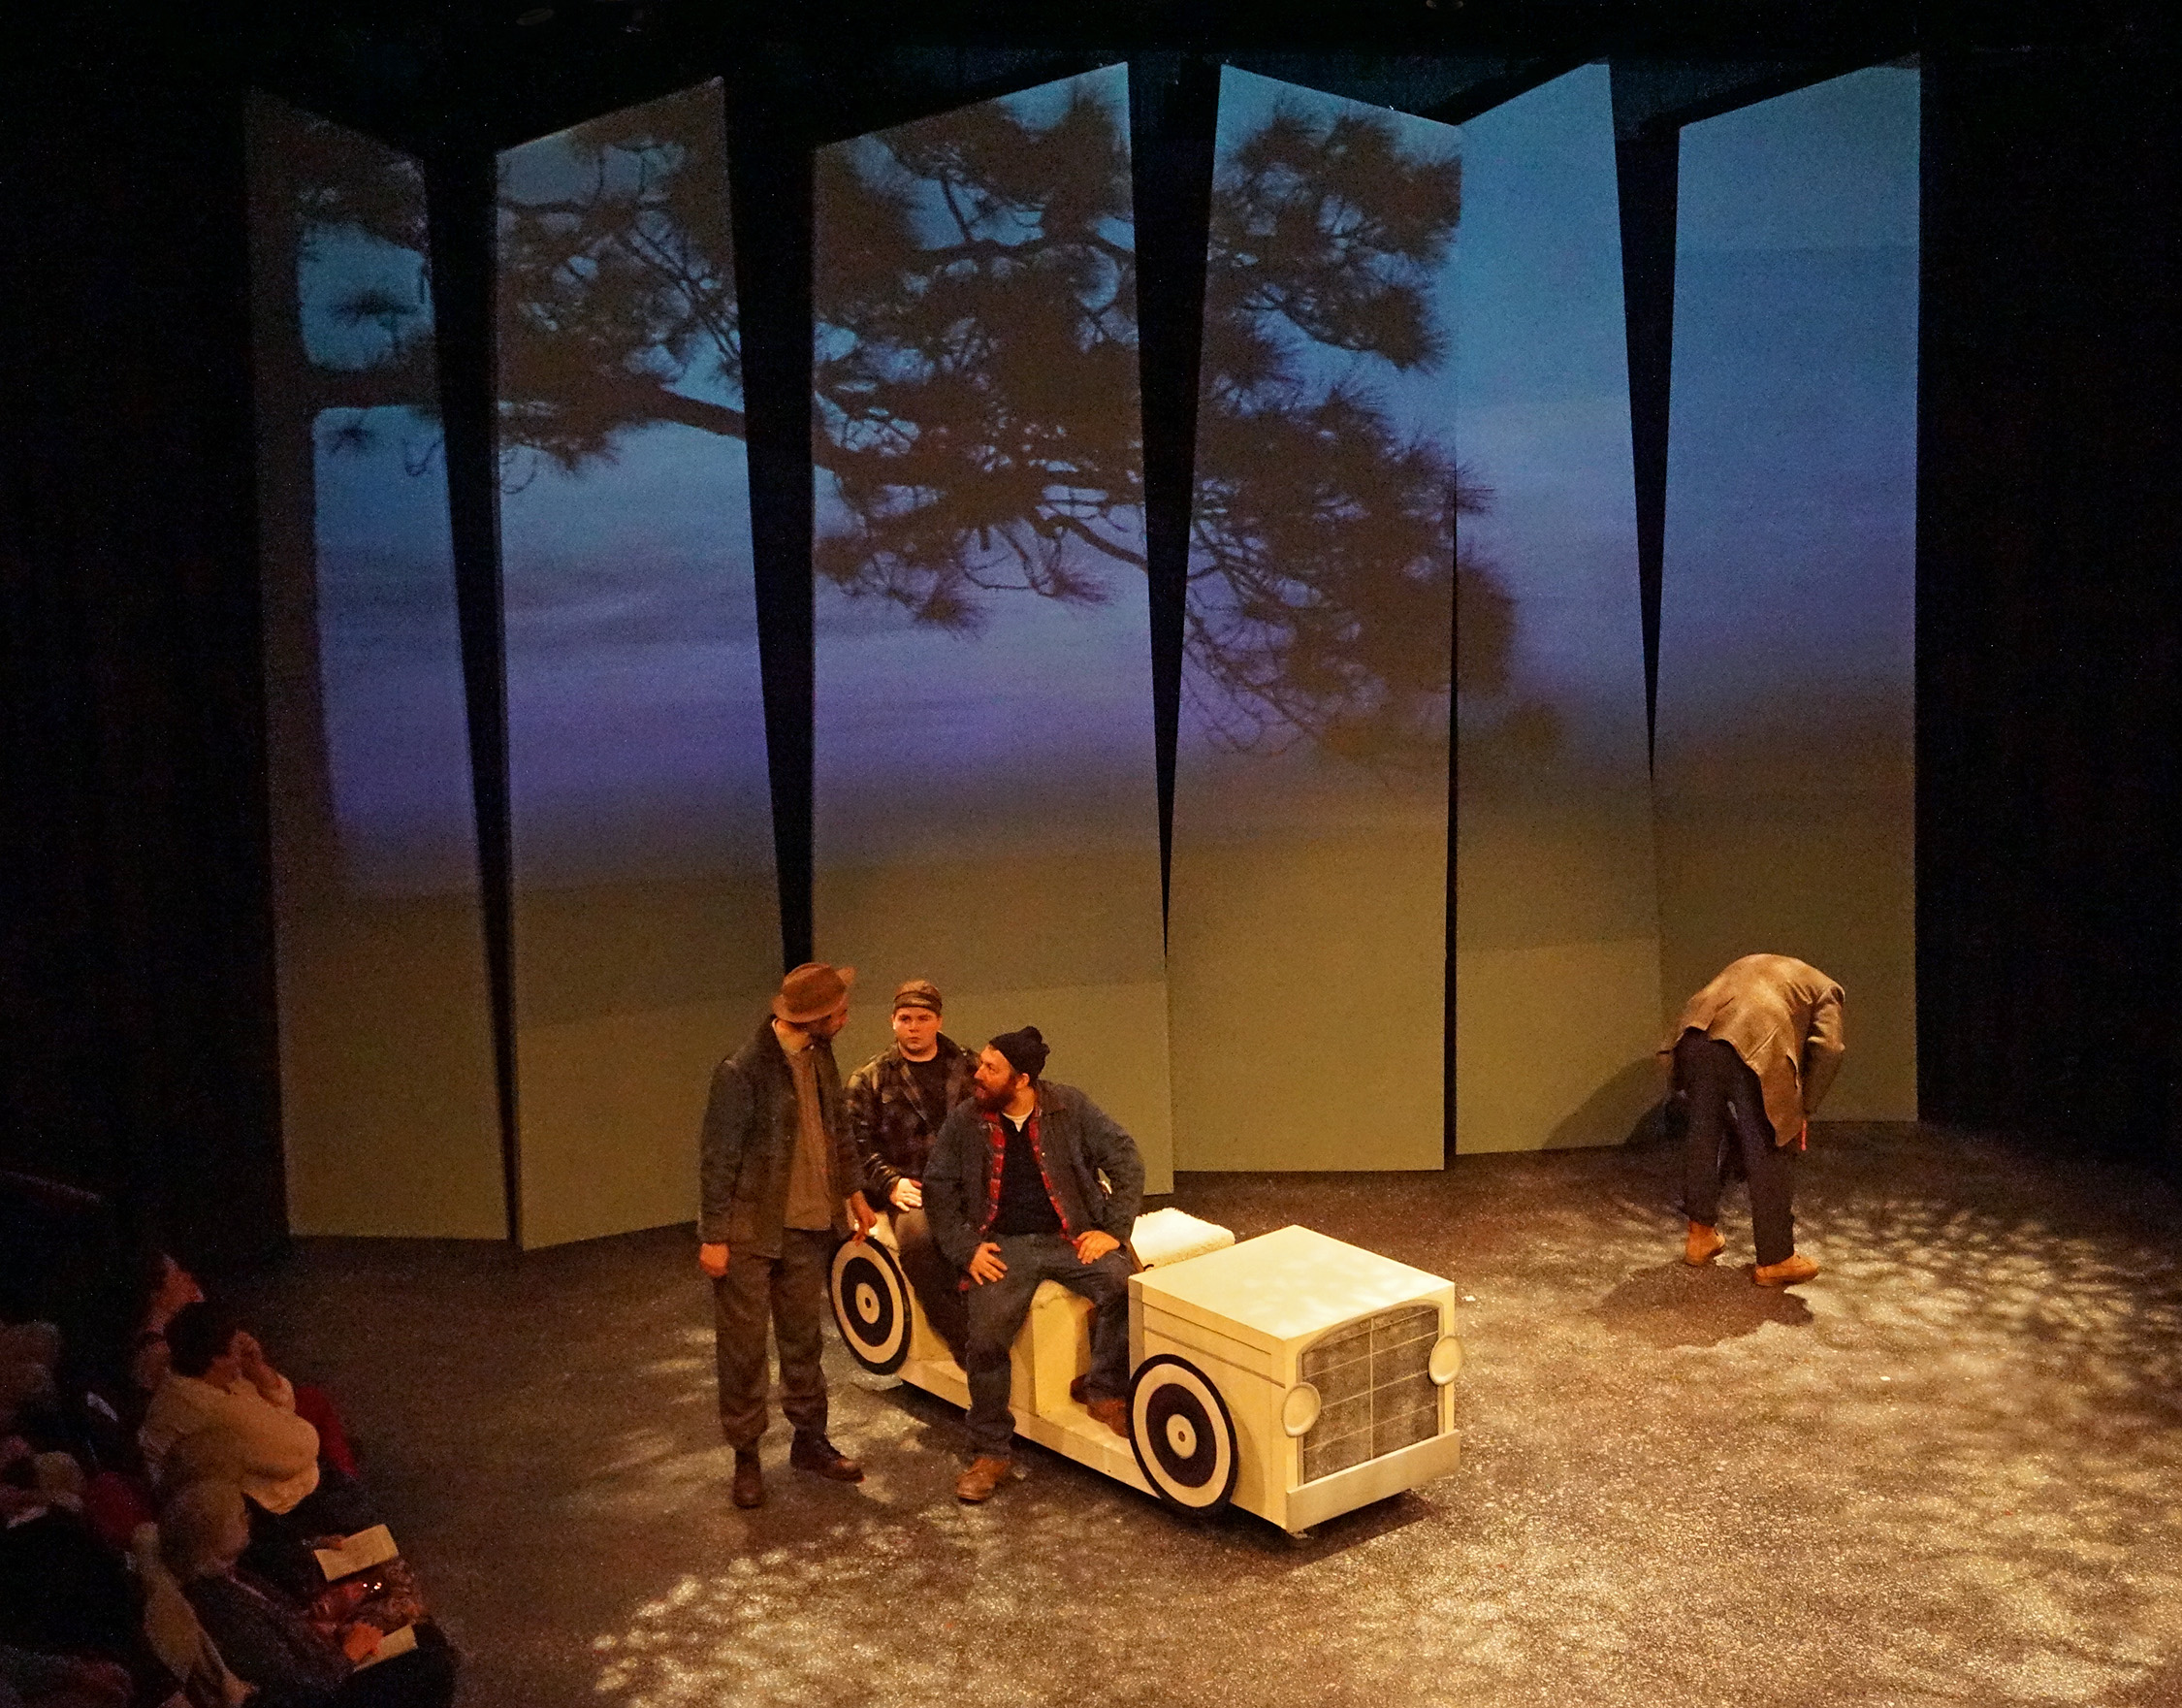 Mike Furey captures a rare quiet moment in Howard Frank Mosher's  DISAPPEARANCES adapted for stage by Kim Allen Bent for Lost Nation Theater